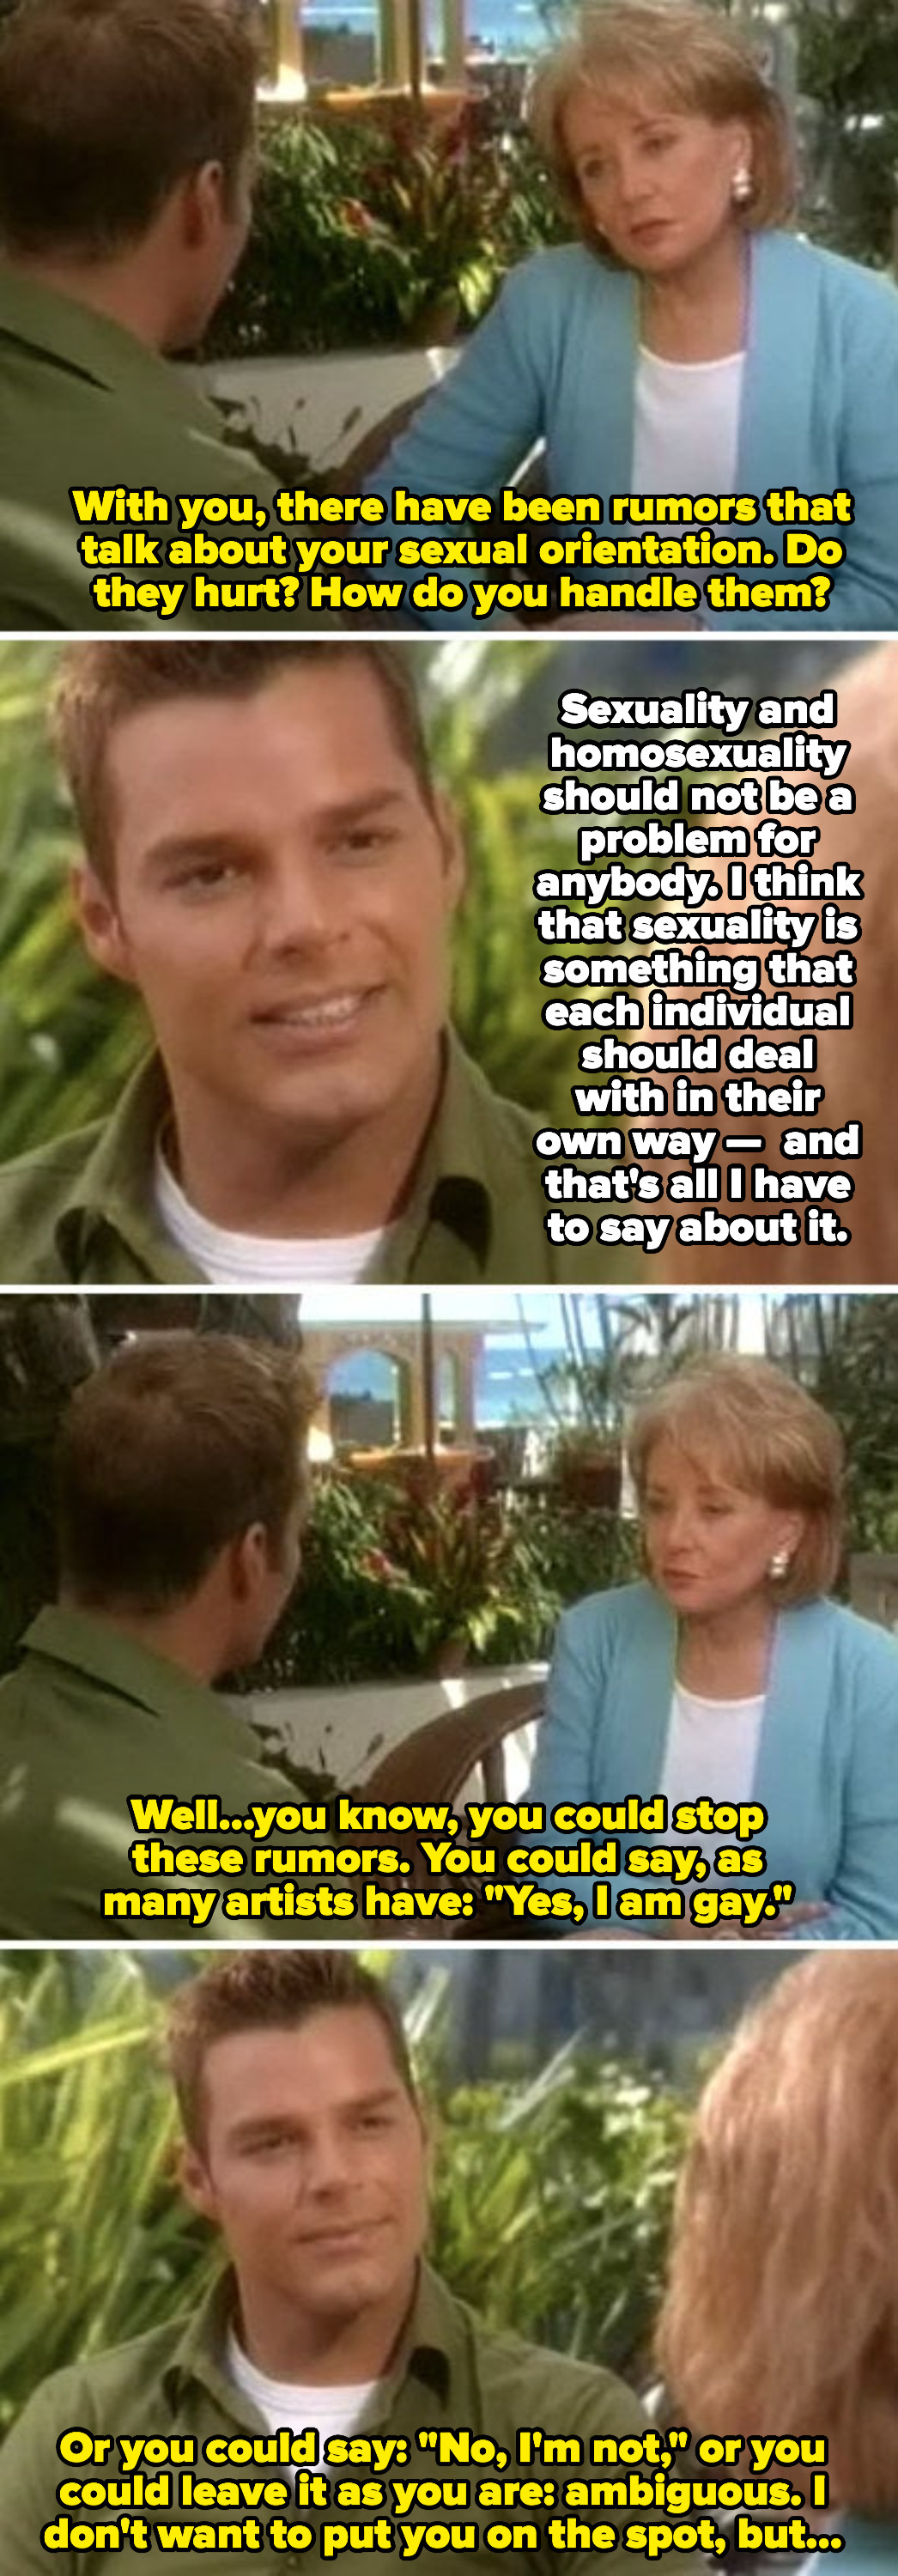 """Ricky Martin: """"Sexuality is something that each individual should deal with in their own way."""" Barbara Walters: """"Well, you could stop these rumors and say: 'Yes, I am gay'"""""""